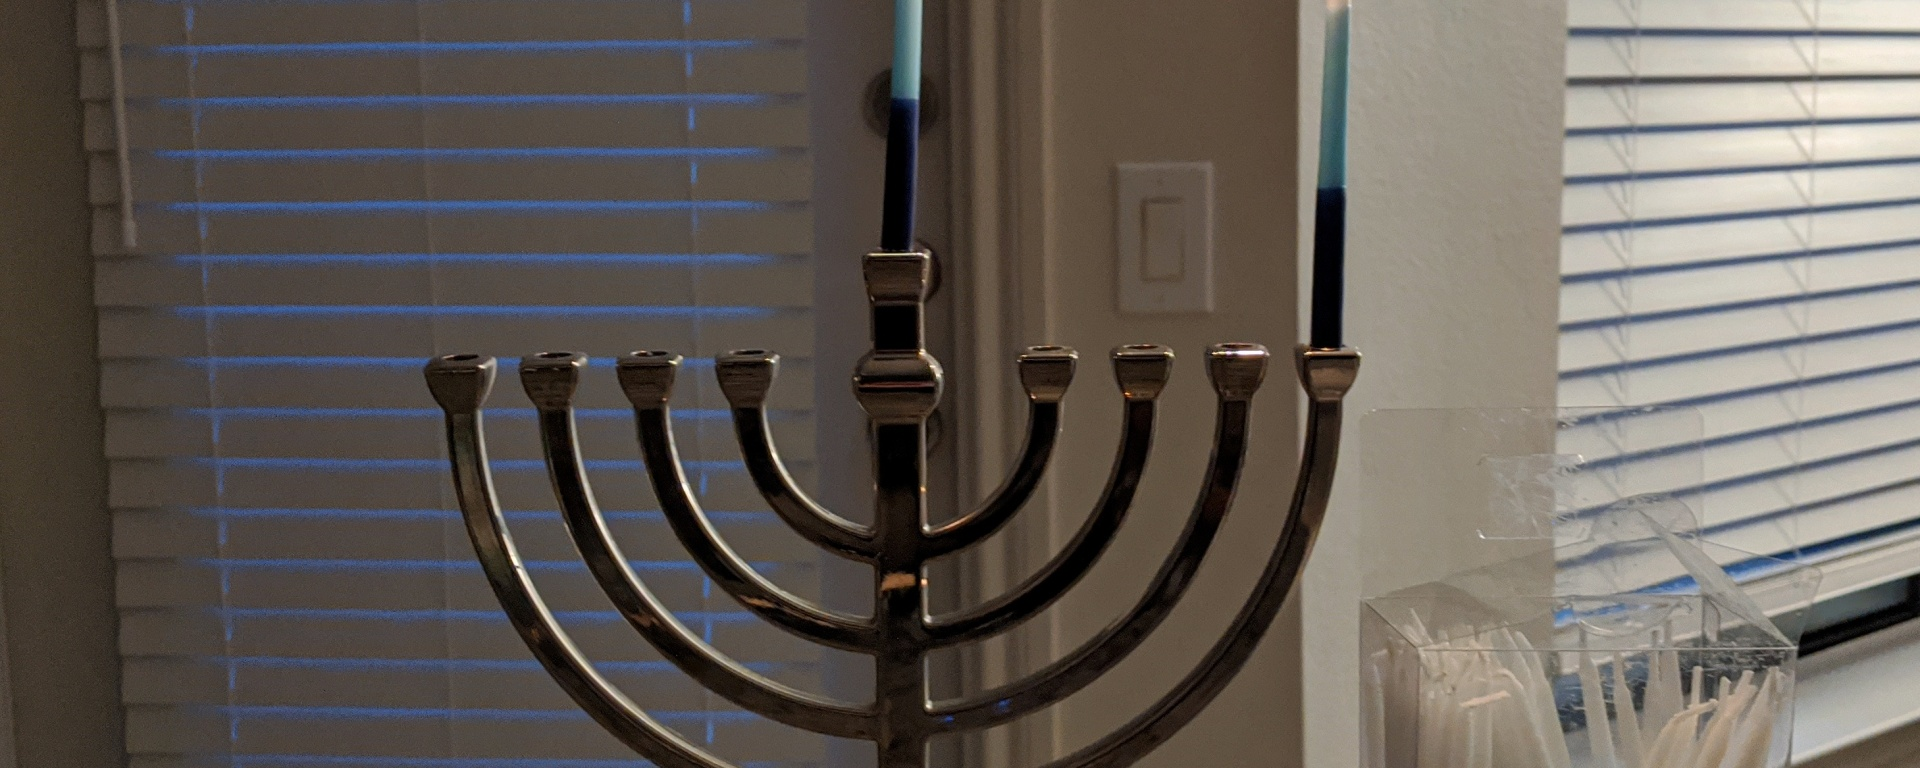 First-night-of-Hanukkah candles burning.